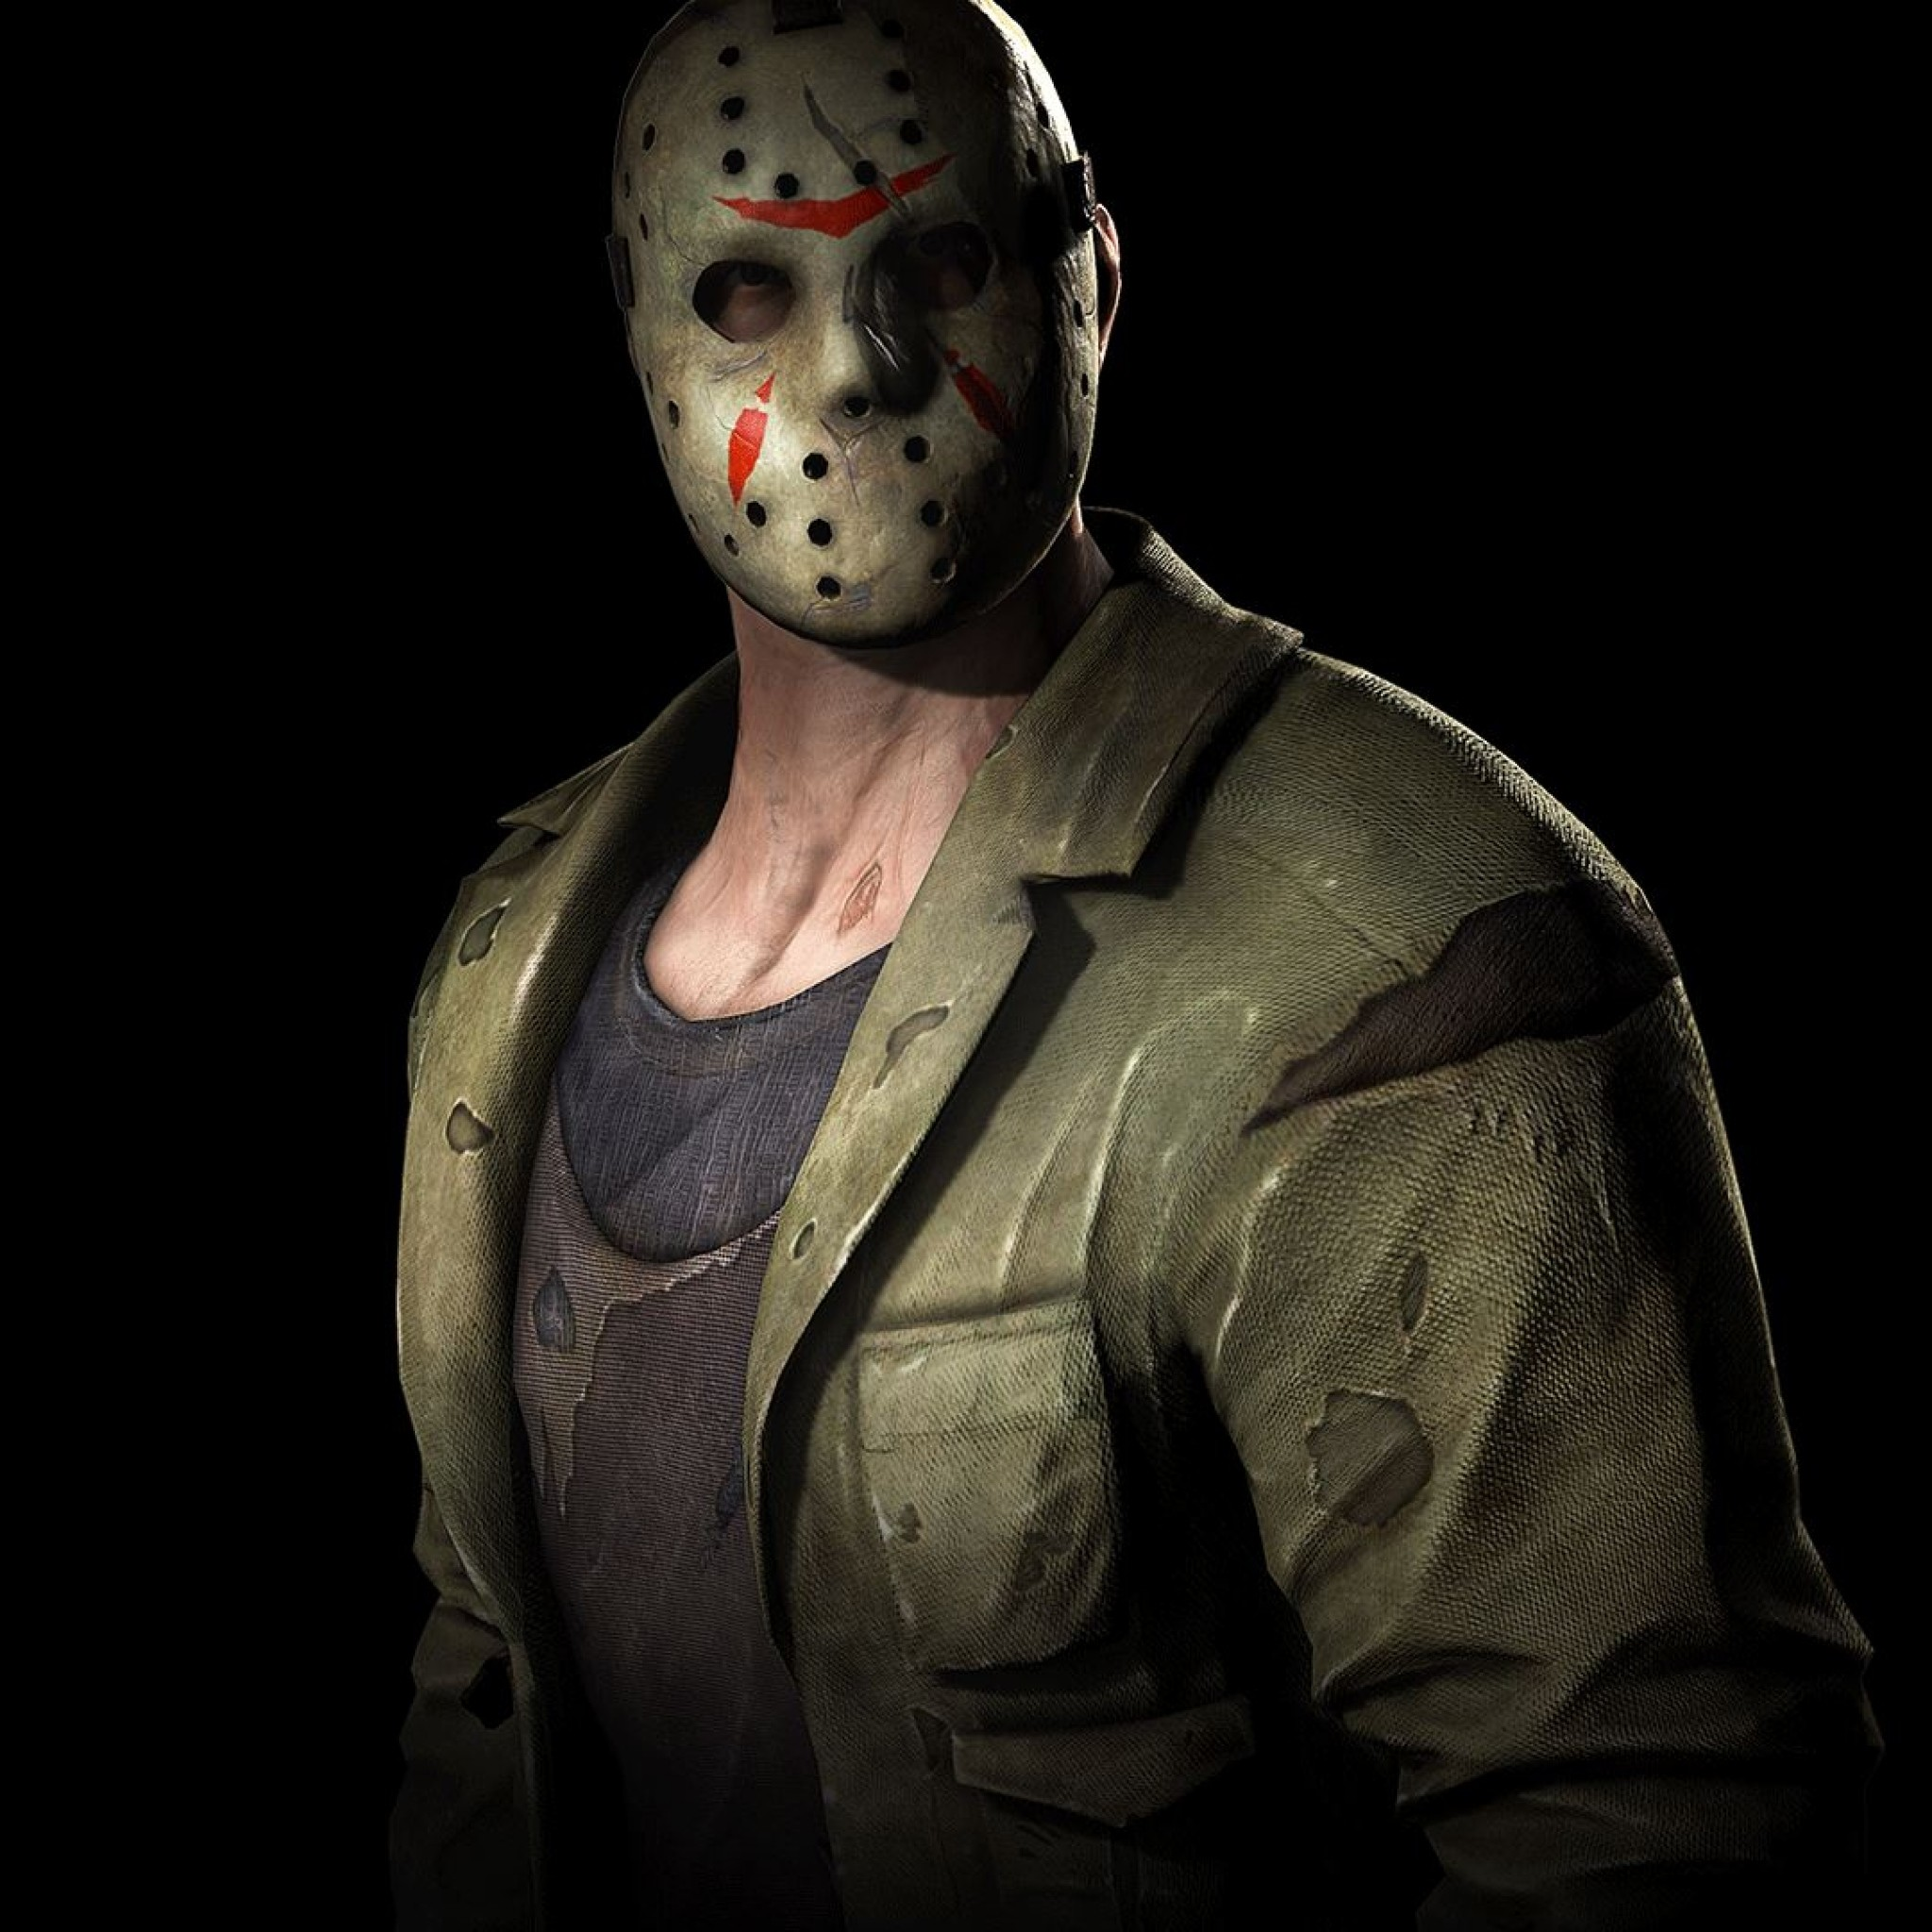 Wallpaper jason voorhees, friday the 13th, character